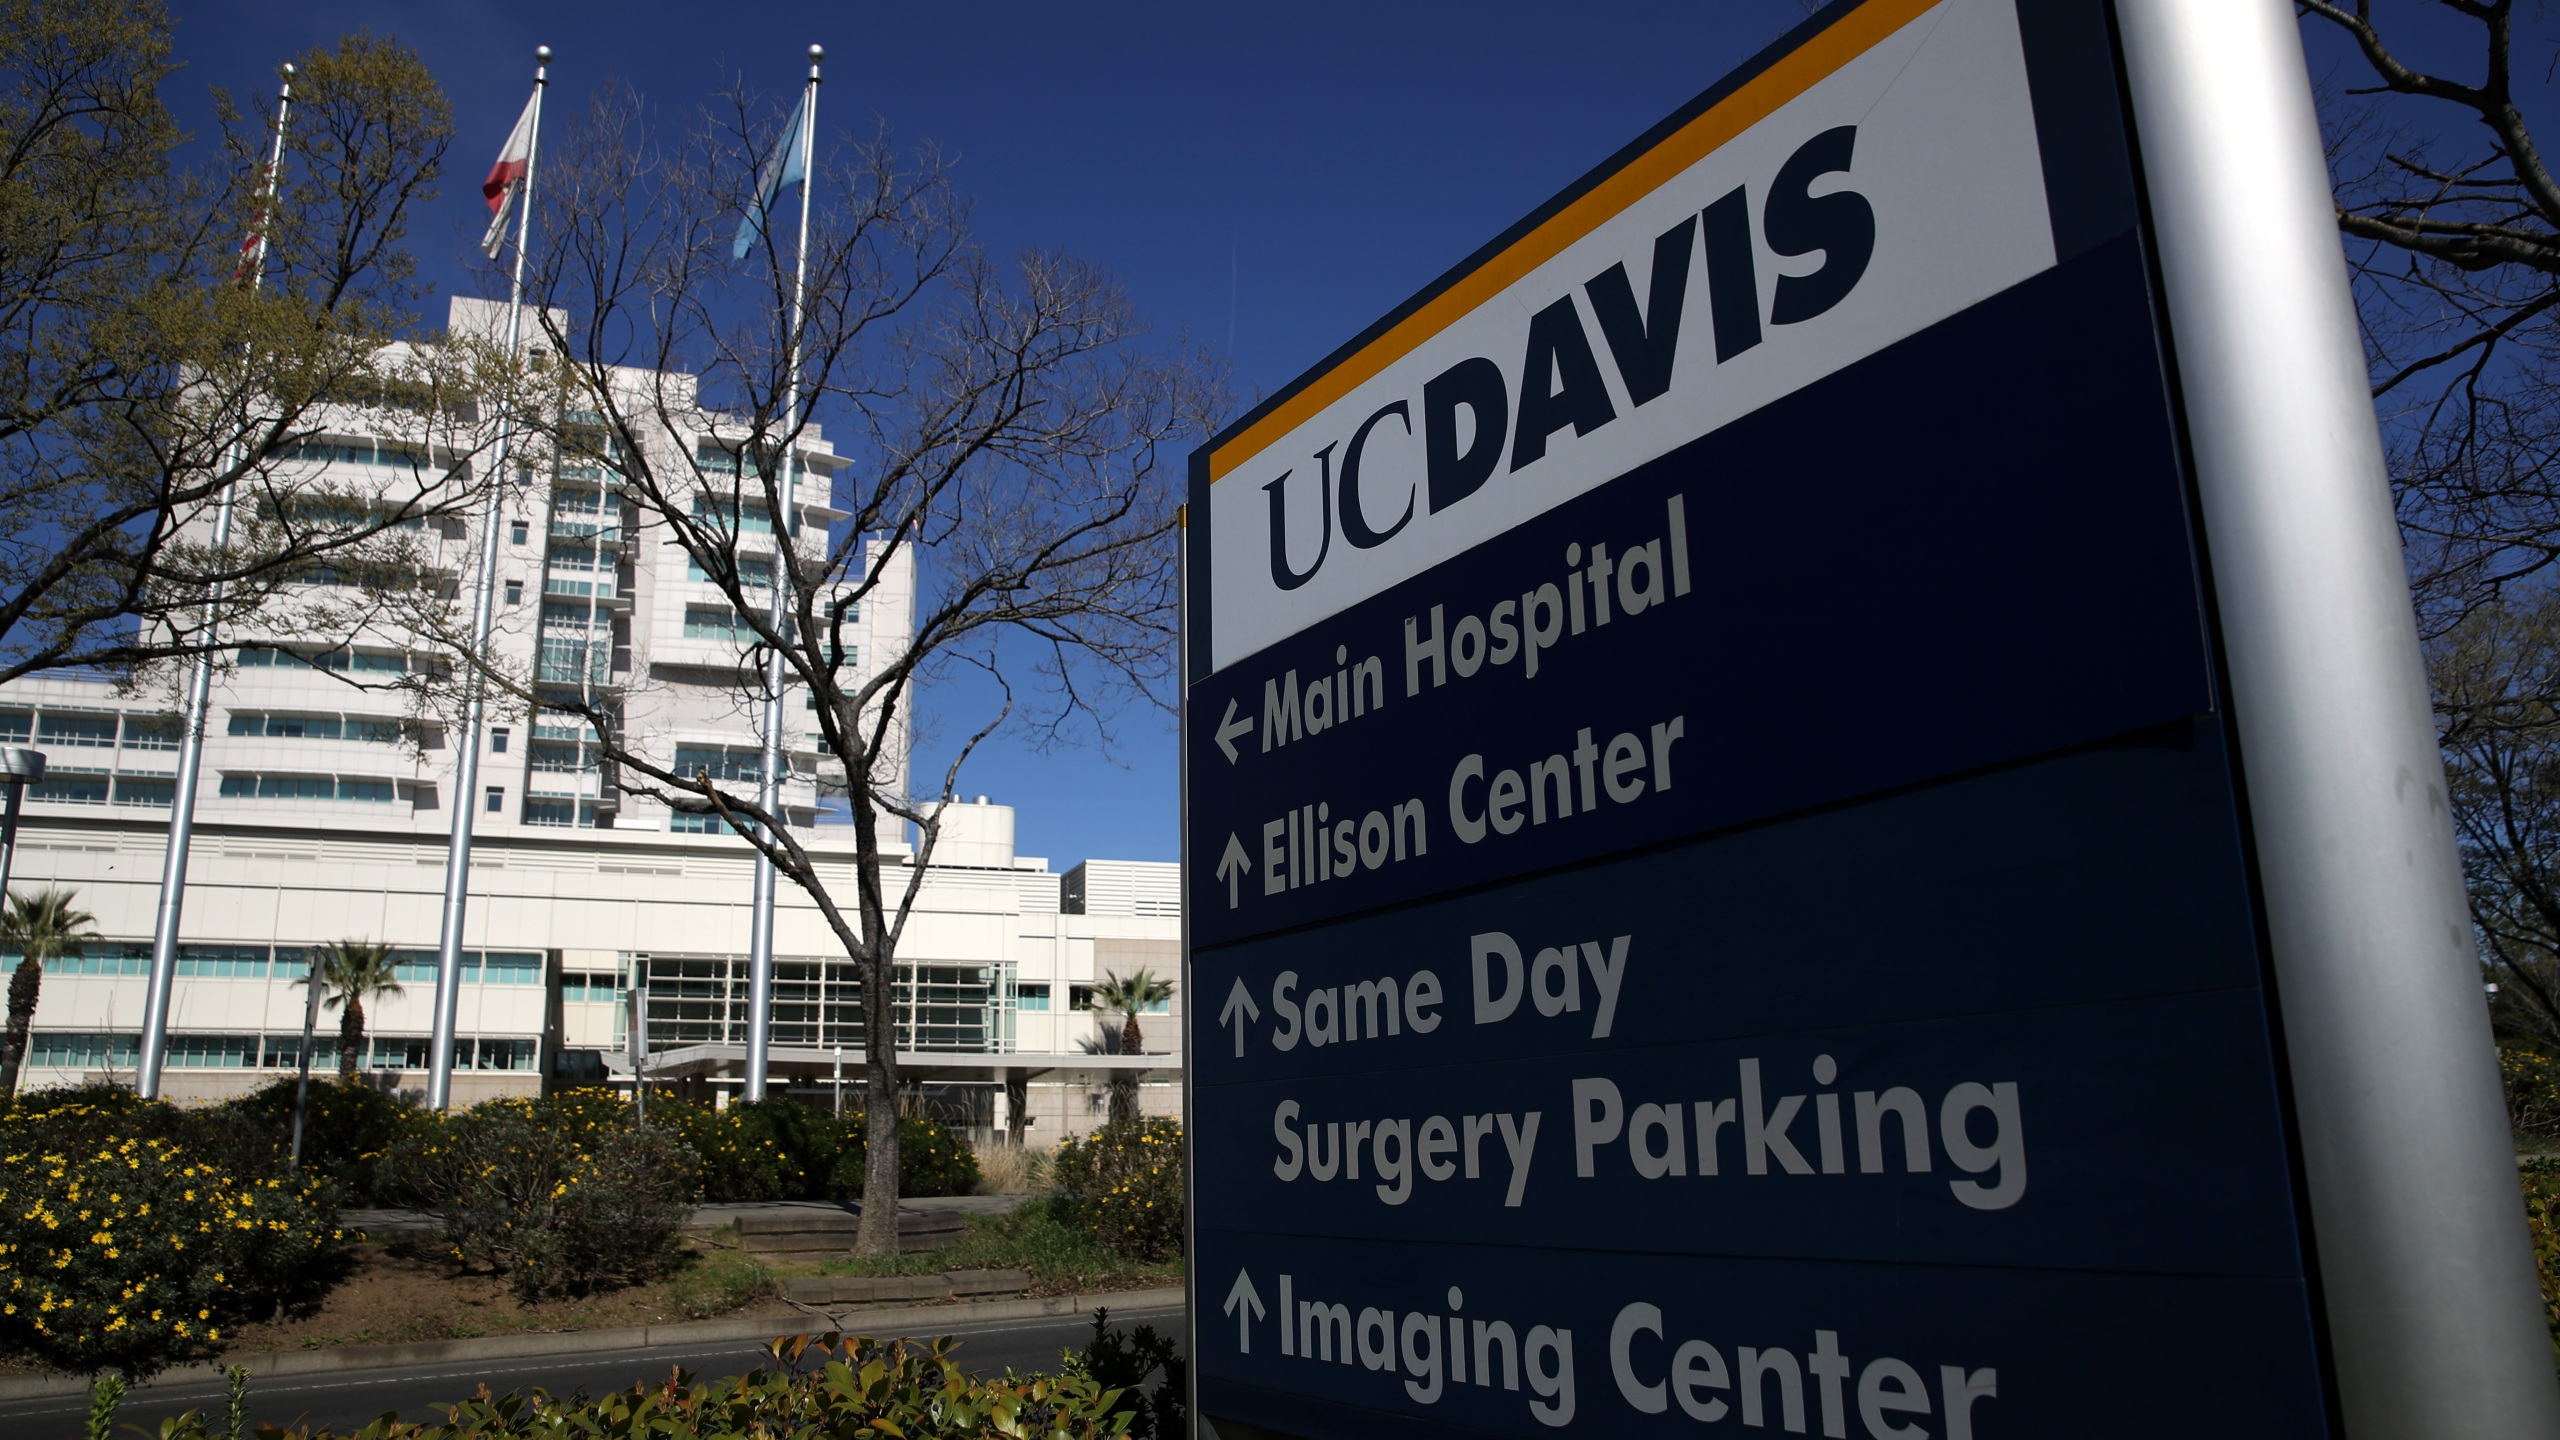 """A view of UC Davis Medical Center on Feb. 27, 2020, in Sacramento. A Solano County resident who is the first confirmed case of the Coronavirus COVID-19 that was """"community acquired"""" has been held in isolation while undergoing treatment at the UC Davis Medical Center for the past week. (Justin Sullivan/Getty Images)"""